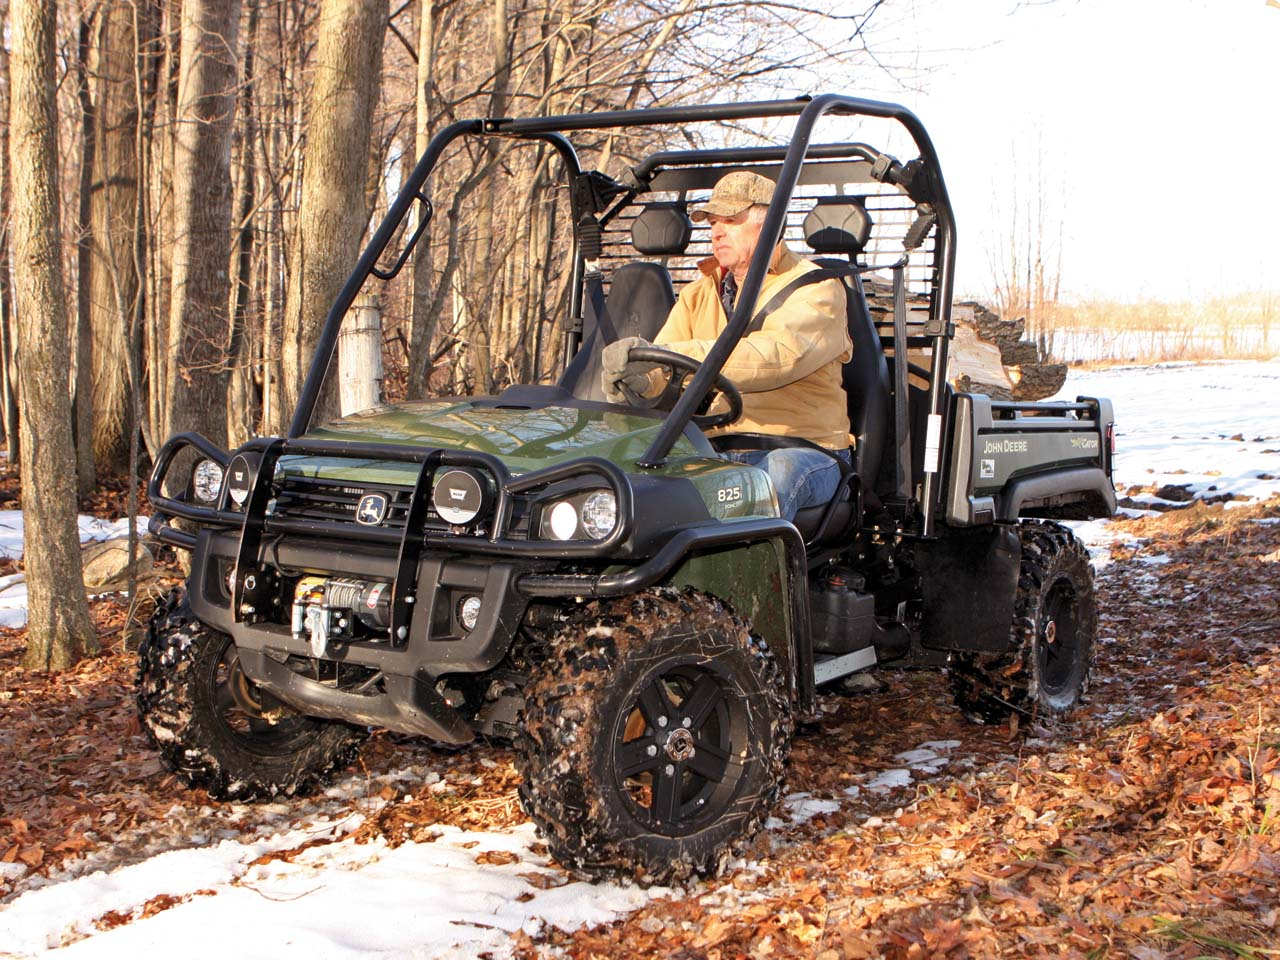 atv illustrated 39 s best utv of 2011 the john deere gator 825i xuv atv illustrated. Black Bedroom Furniture Sets. Home Design Ideas